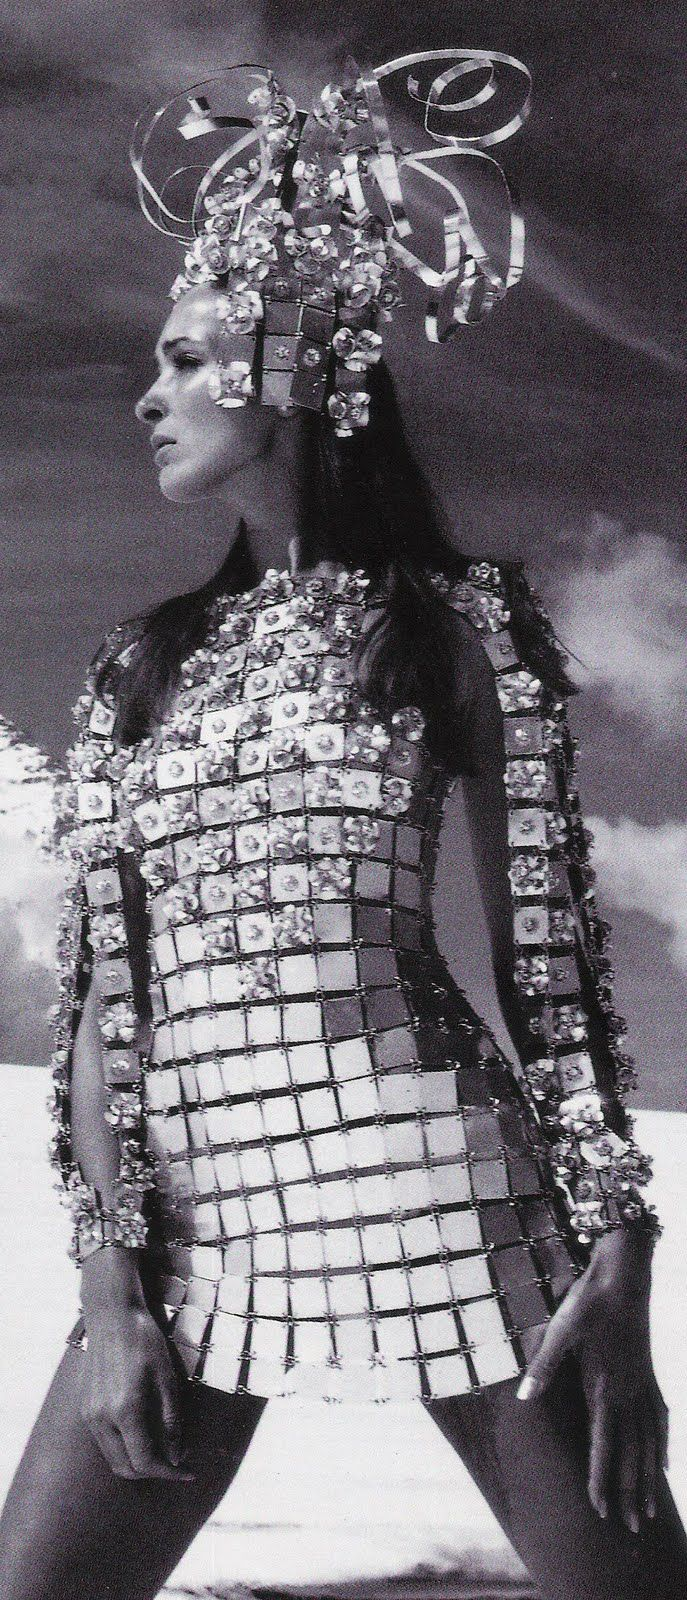 paco rabanne came out with this design during the 60's making the dress with sequins and color stones to make the dress stand out. it was short and body fitting.